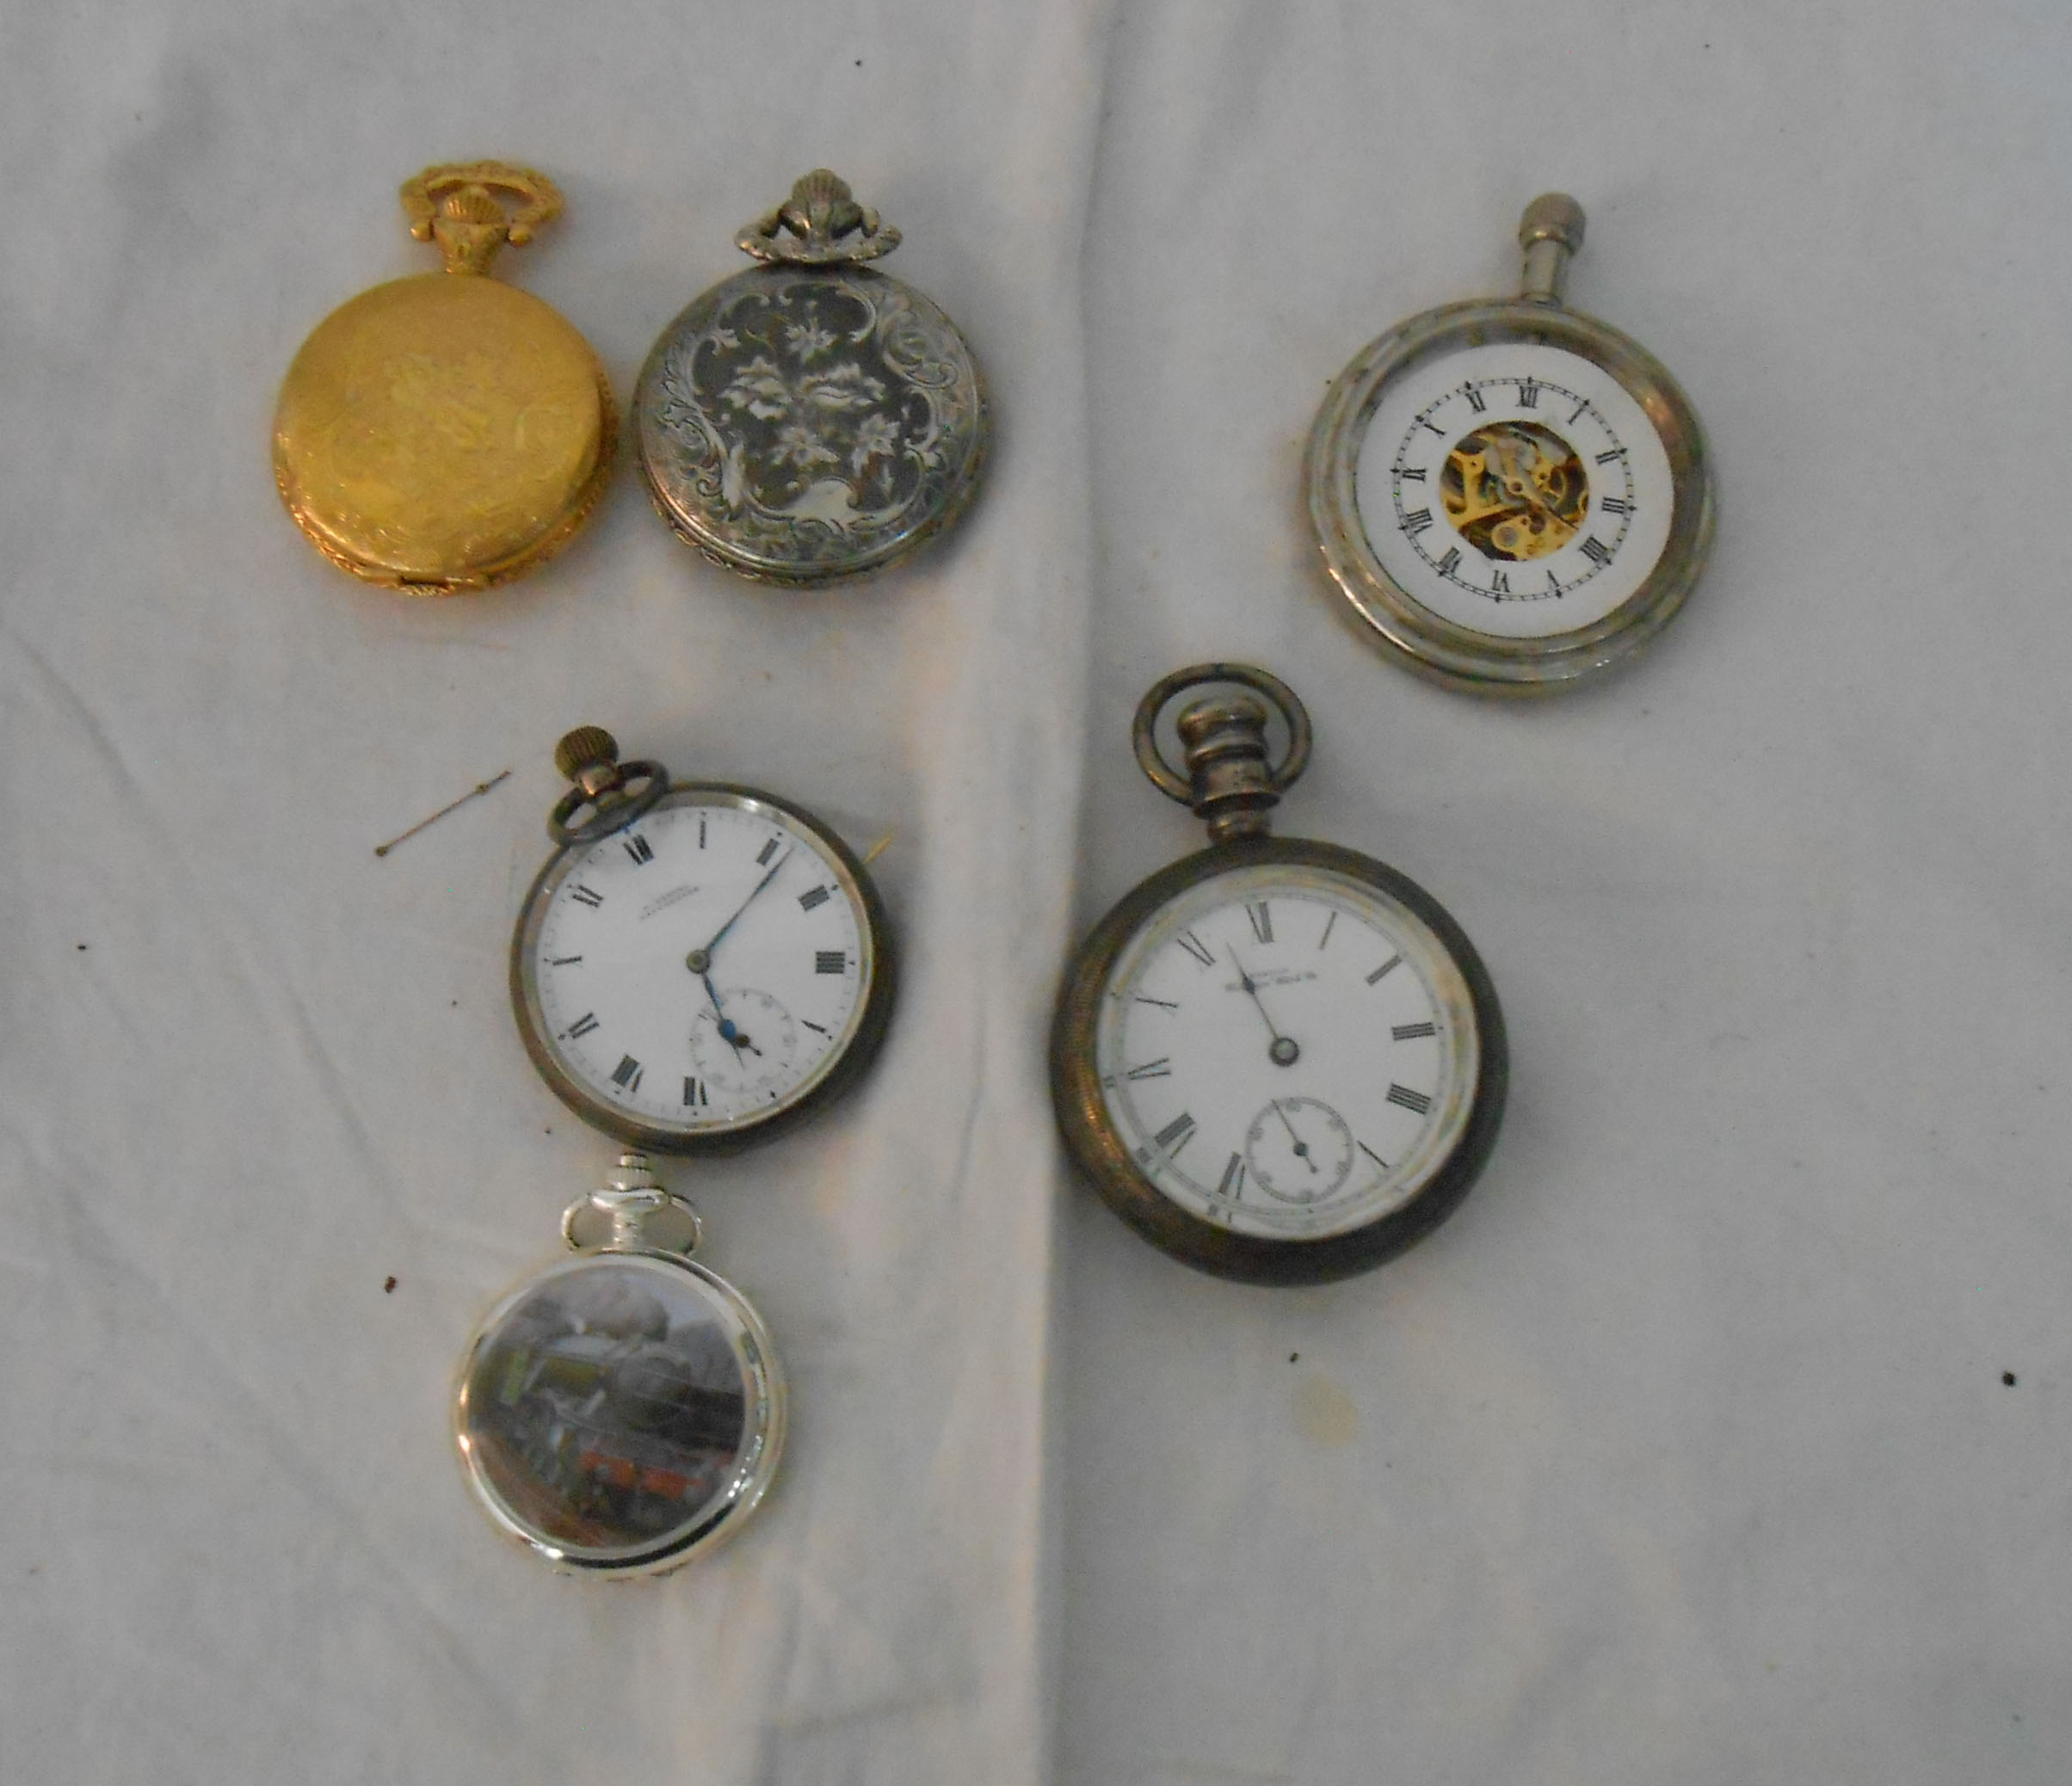 A silver cased lever pocket watch and others - various age and condition